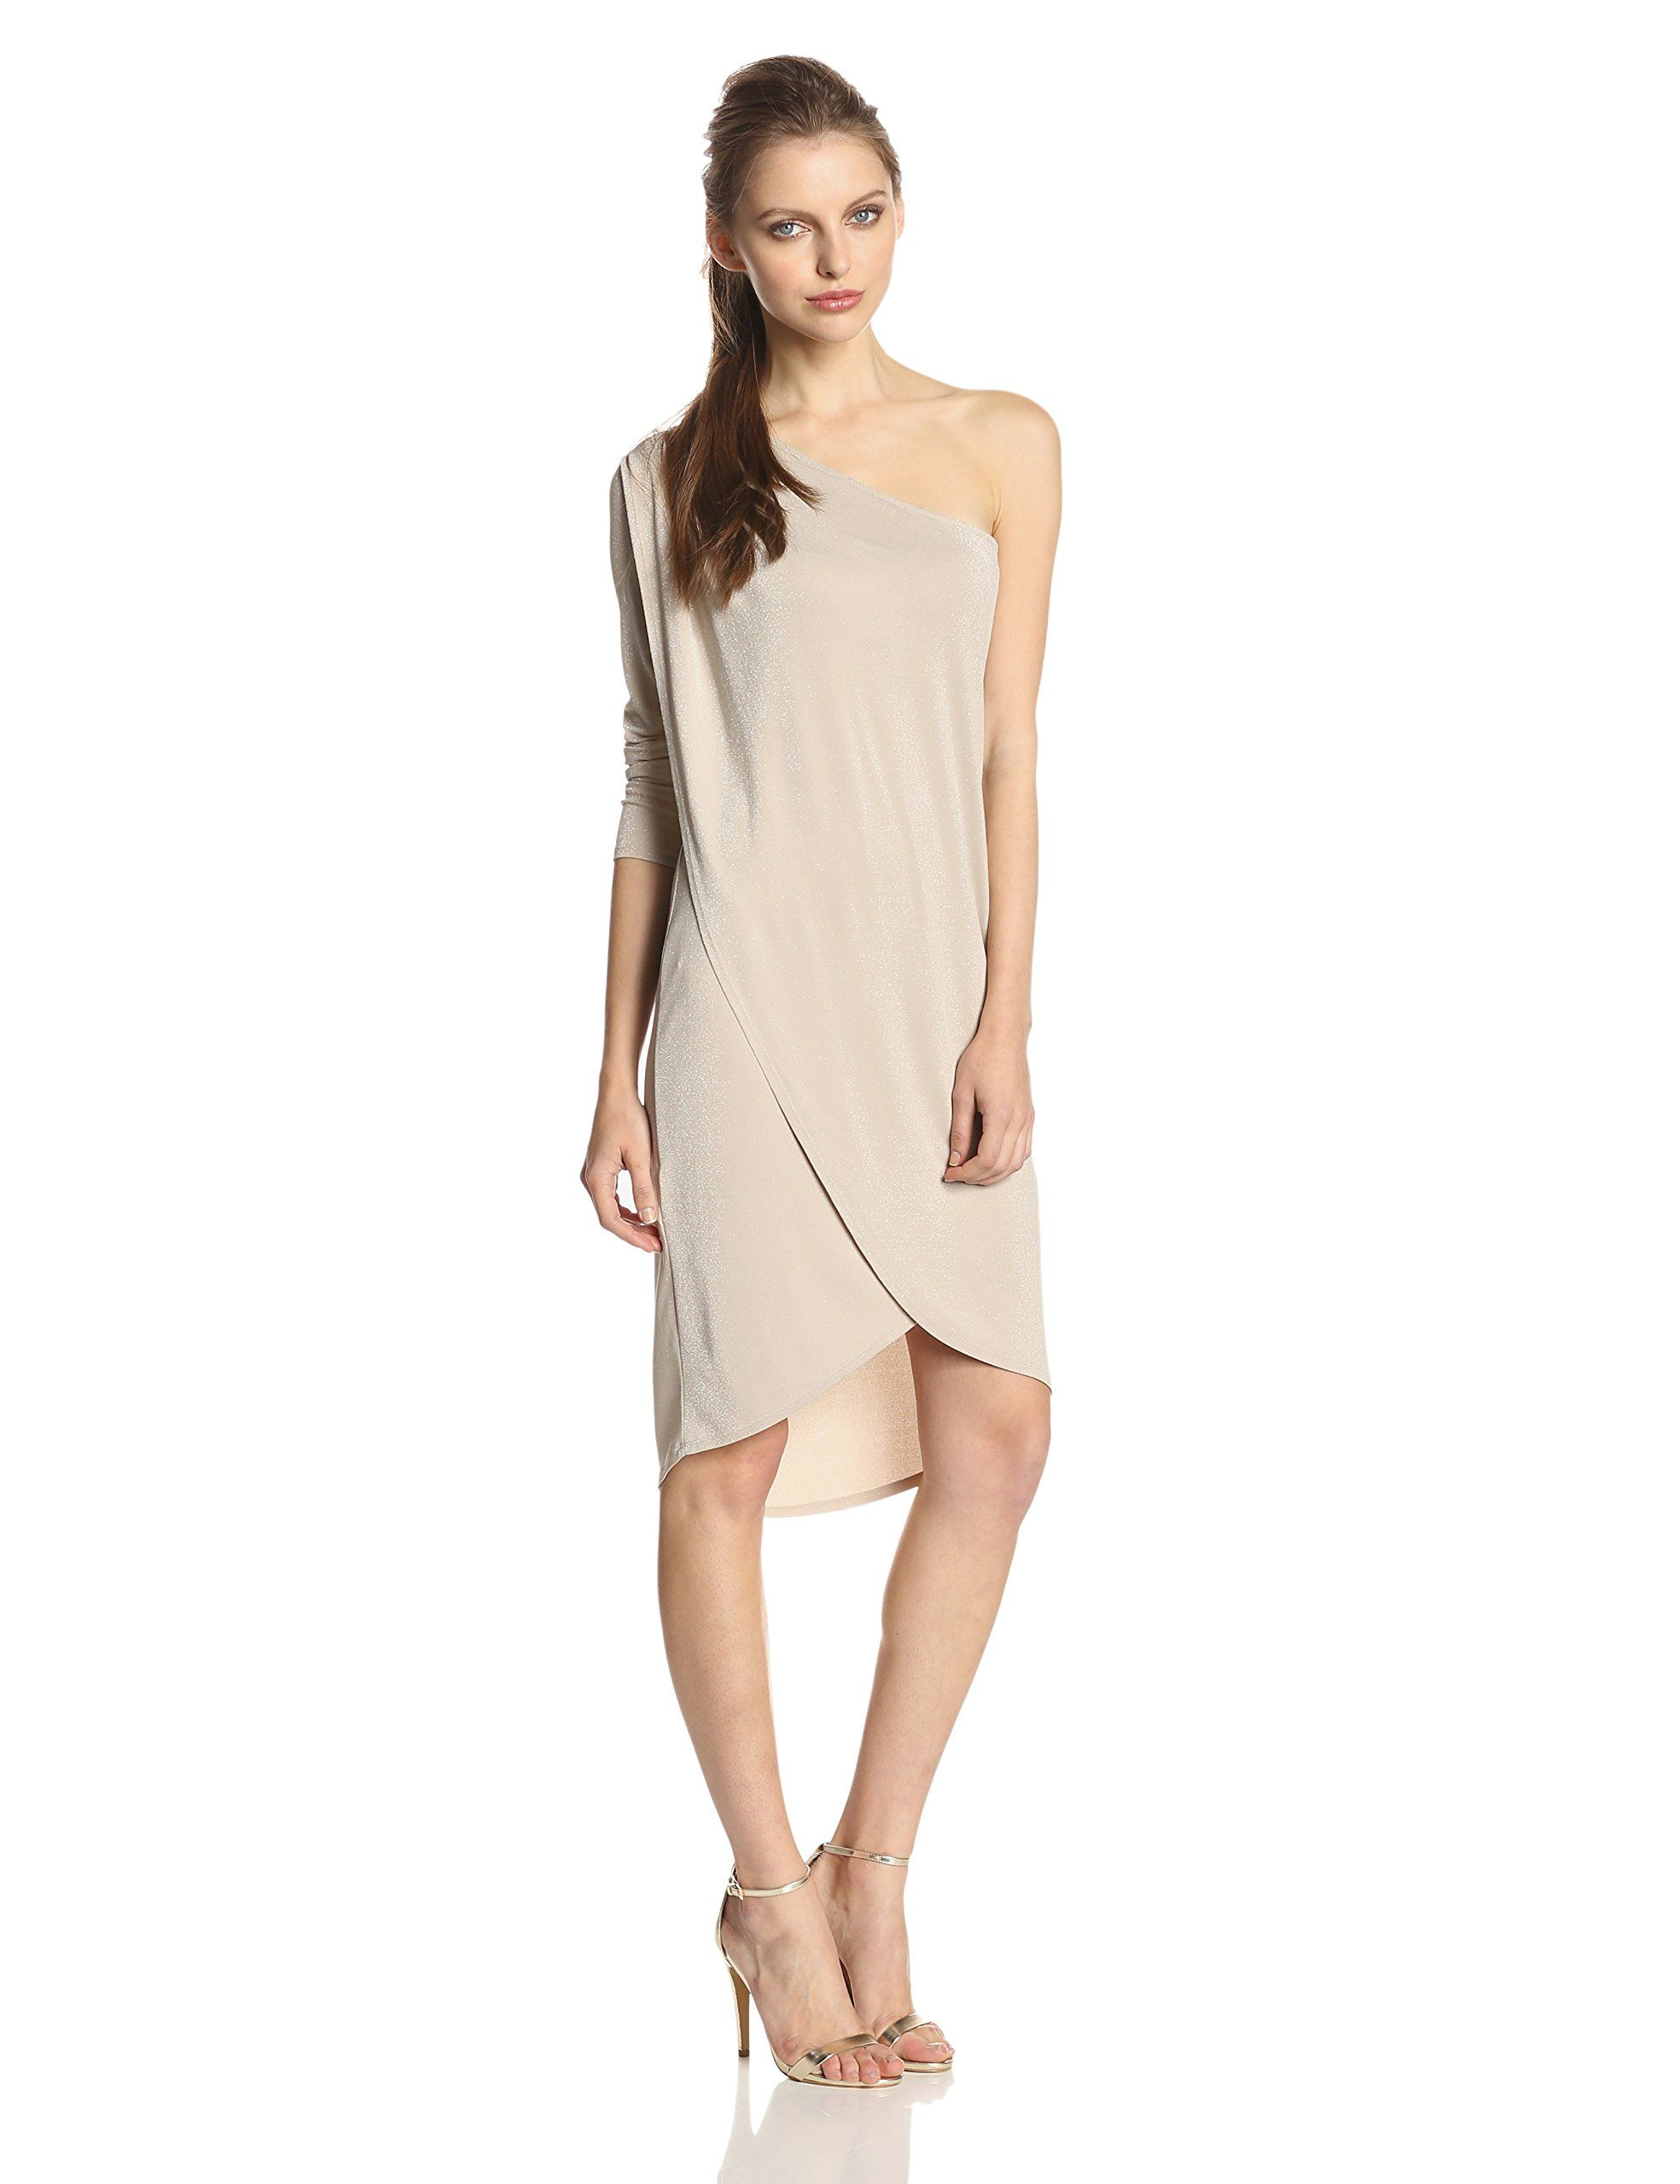 954a1a0b0fc Amazon.com  BCBGMAXAZRIA Women s Jolee Pleated Tulip Hem Dress ...